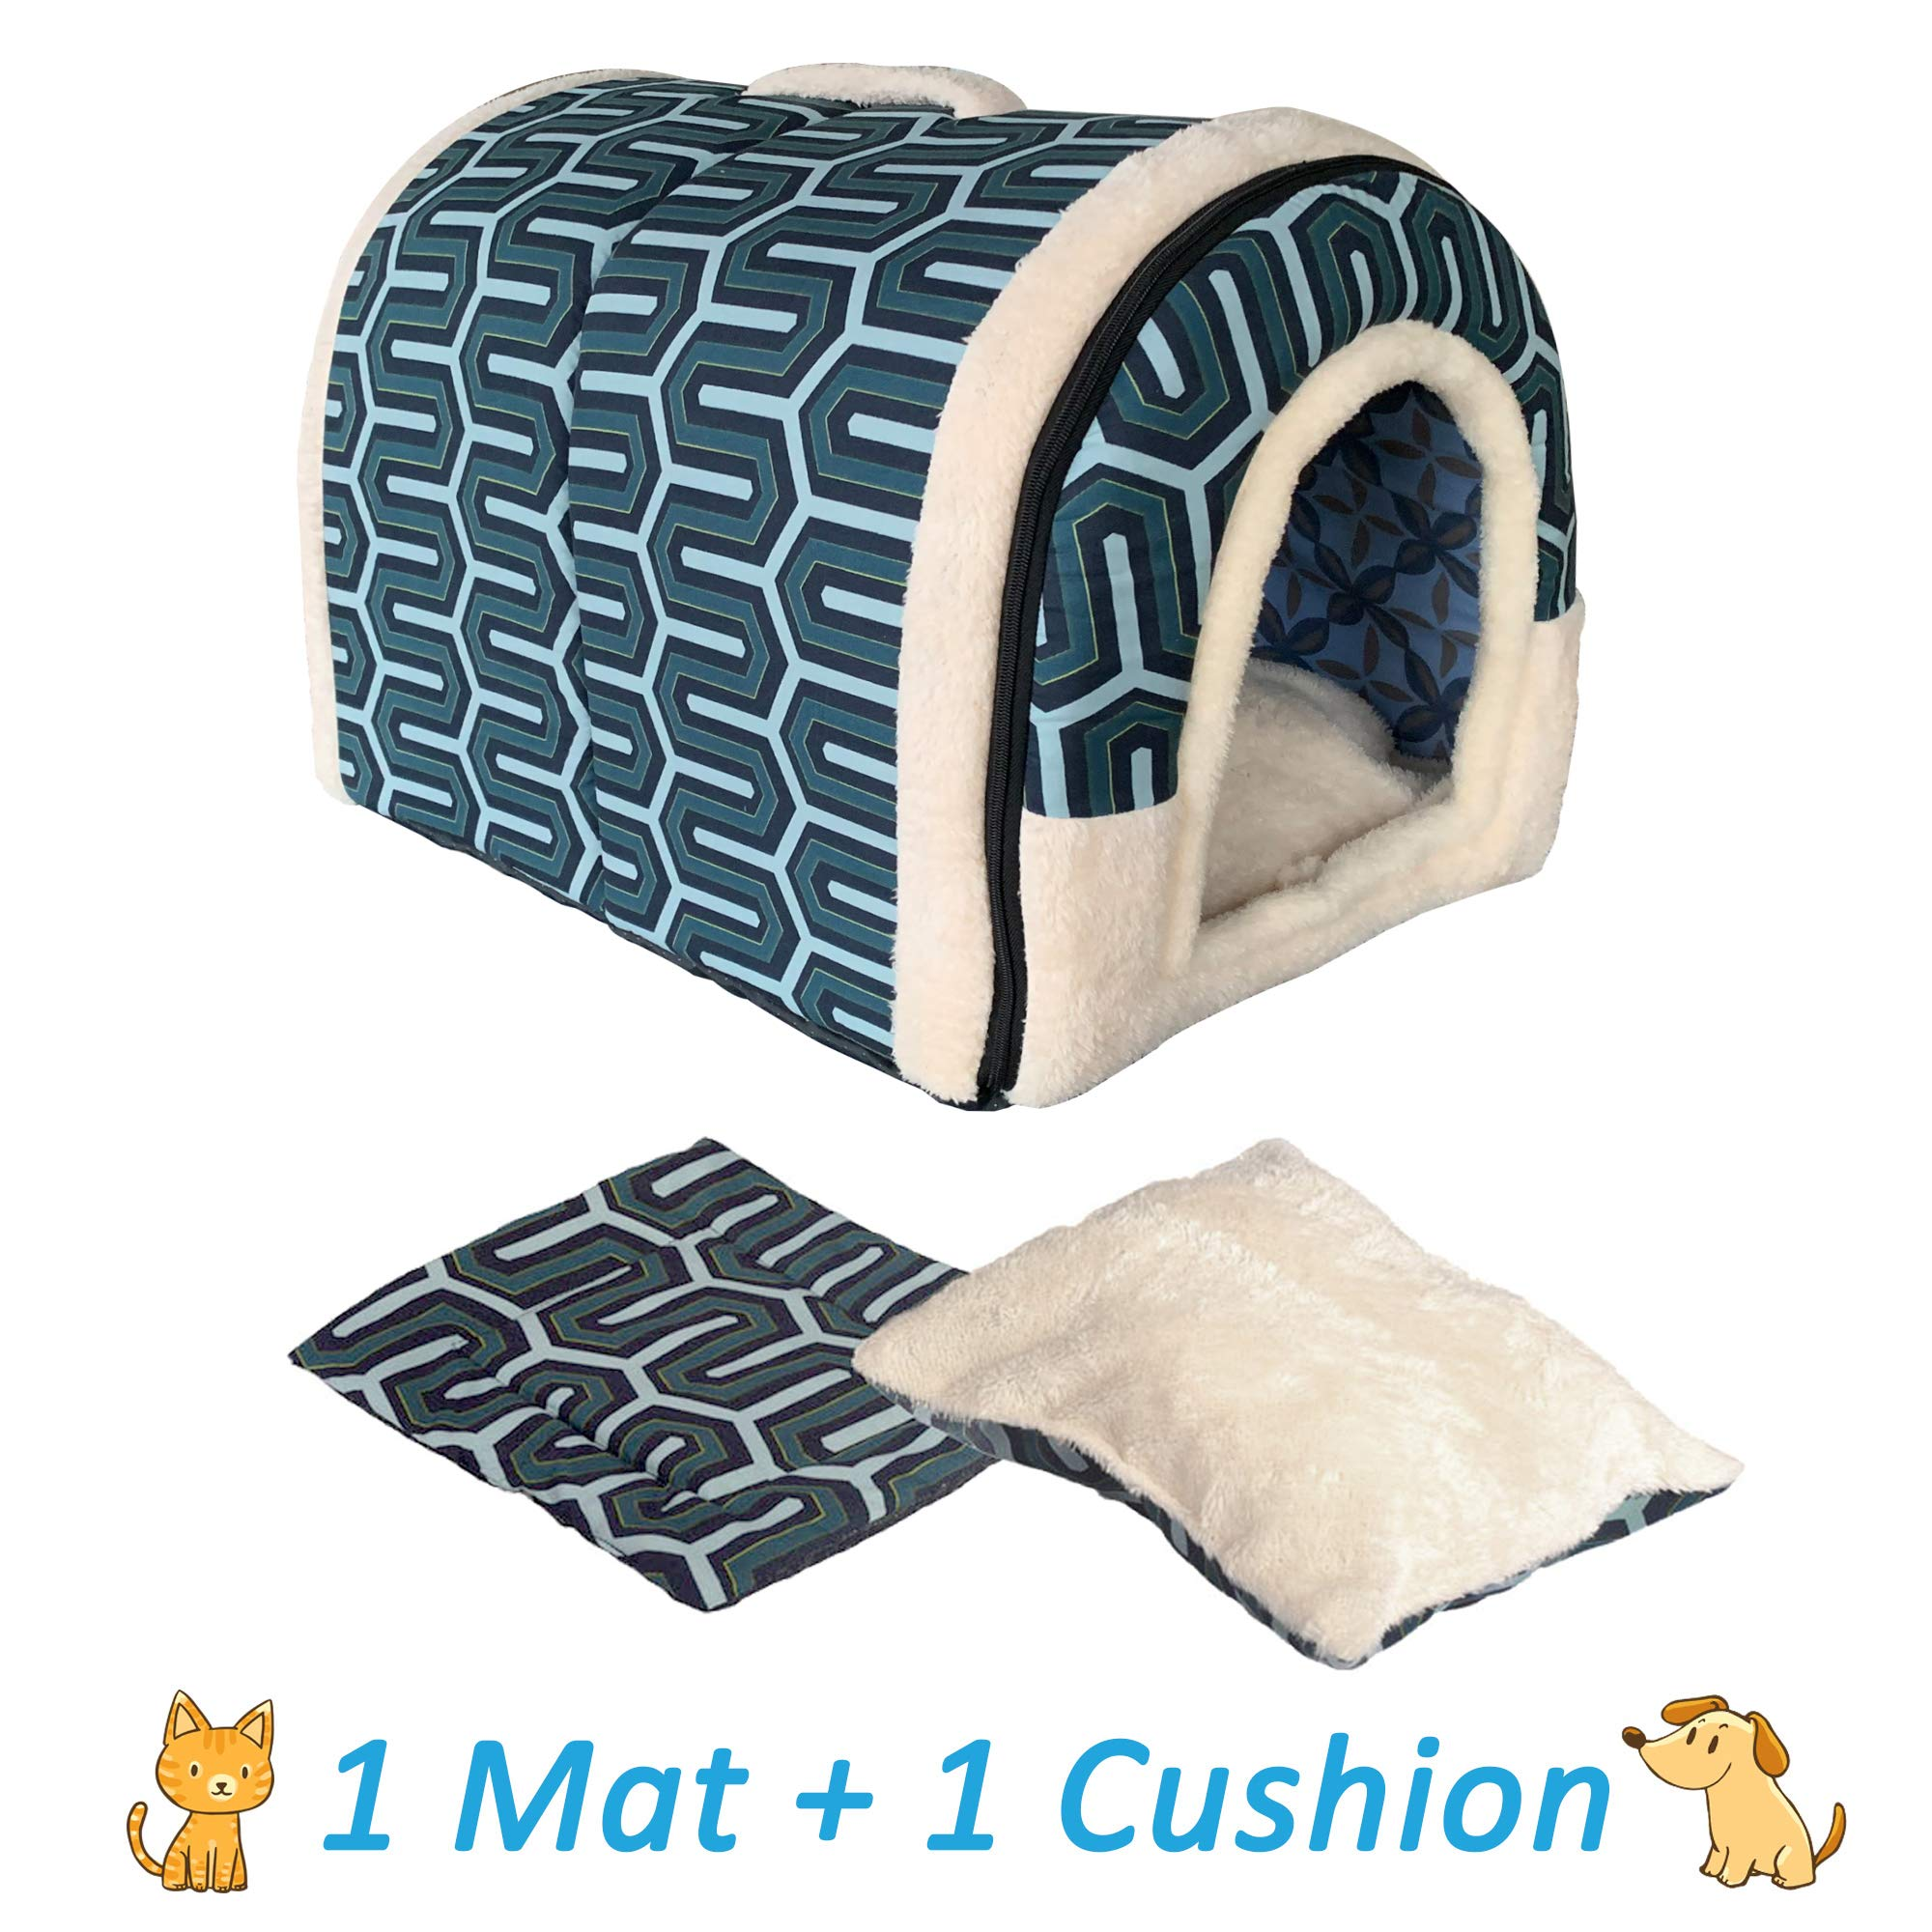 ANPPEX Igloo Dog House, Portable Cat Igloo Bed with Removable Cushion, 2 In 1 Washable Cozy Dog Igloo Bed Cat Cave, Foldable Non-Slip Warm for Pets Puppy Kitten Rabbit